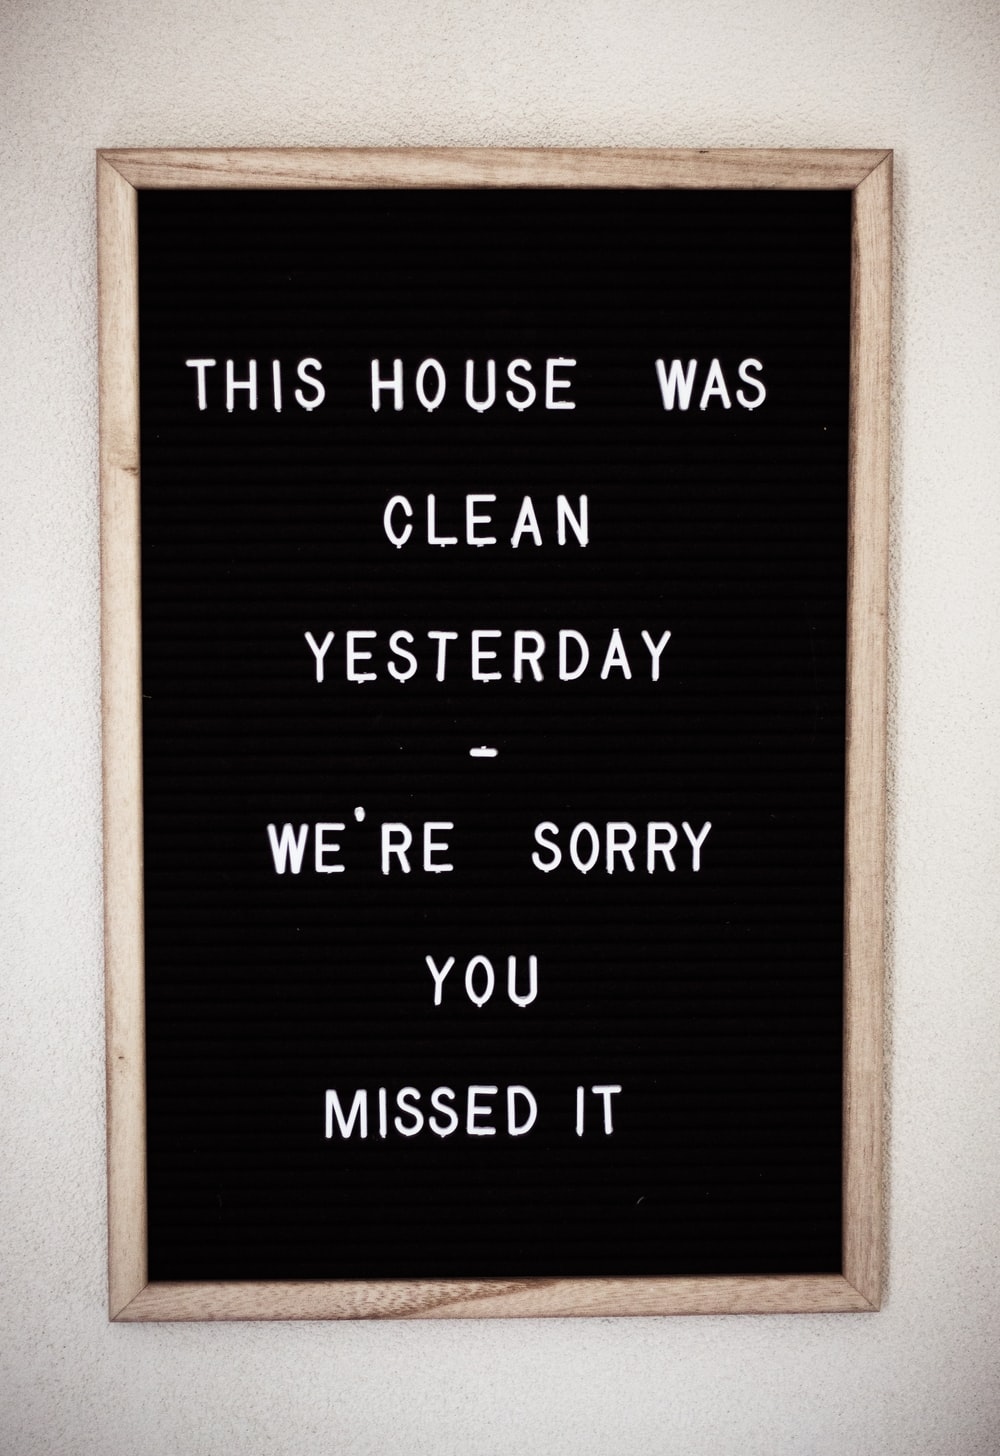 this house was clean yesterday we're sorry you missed it text